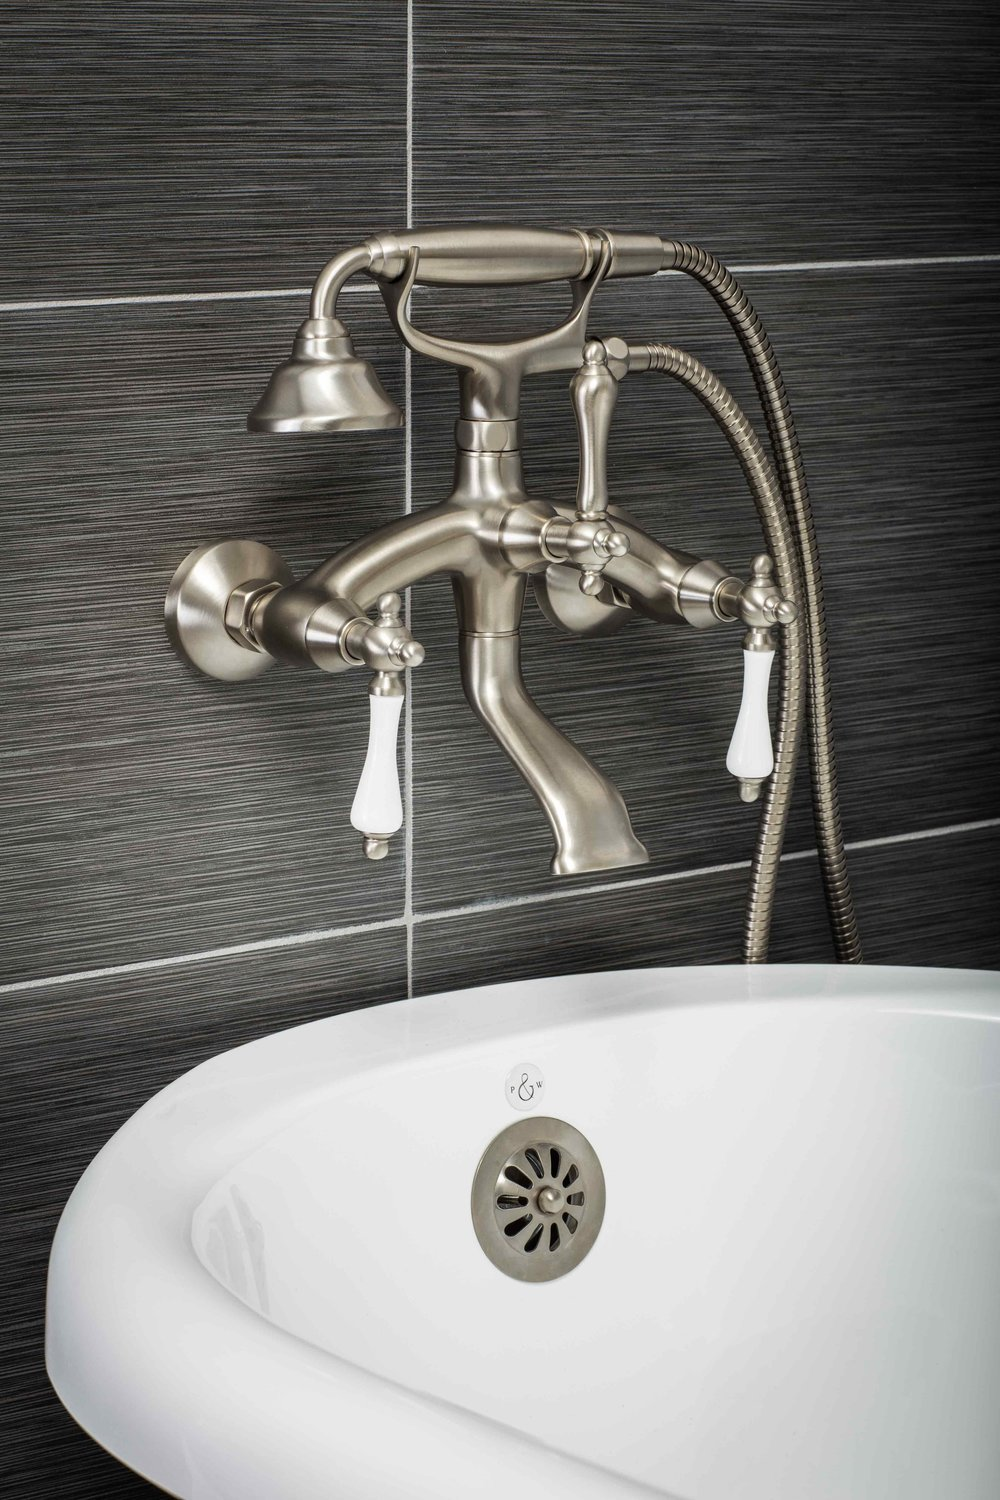 Vintage Wall Mount Tub Filler Faucet in Brushed Nickel with ...